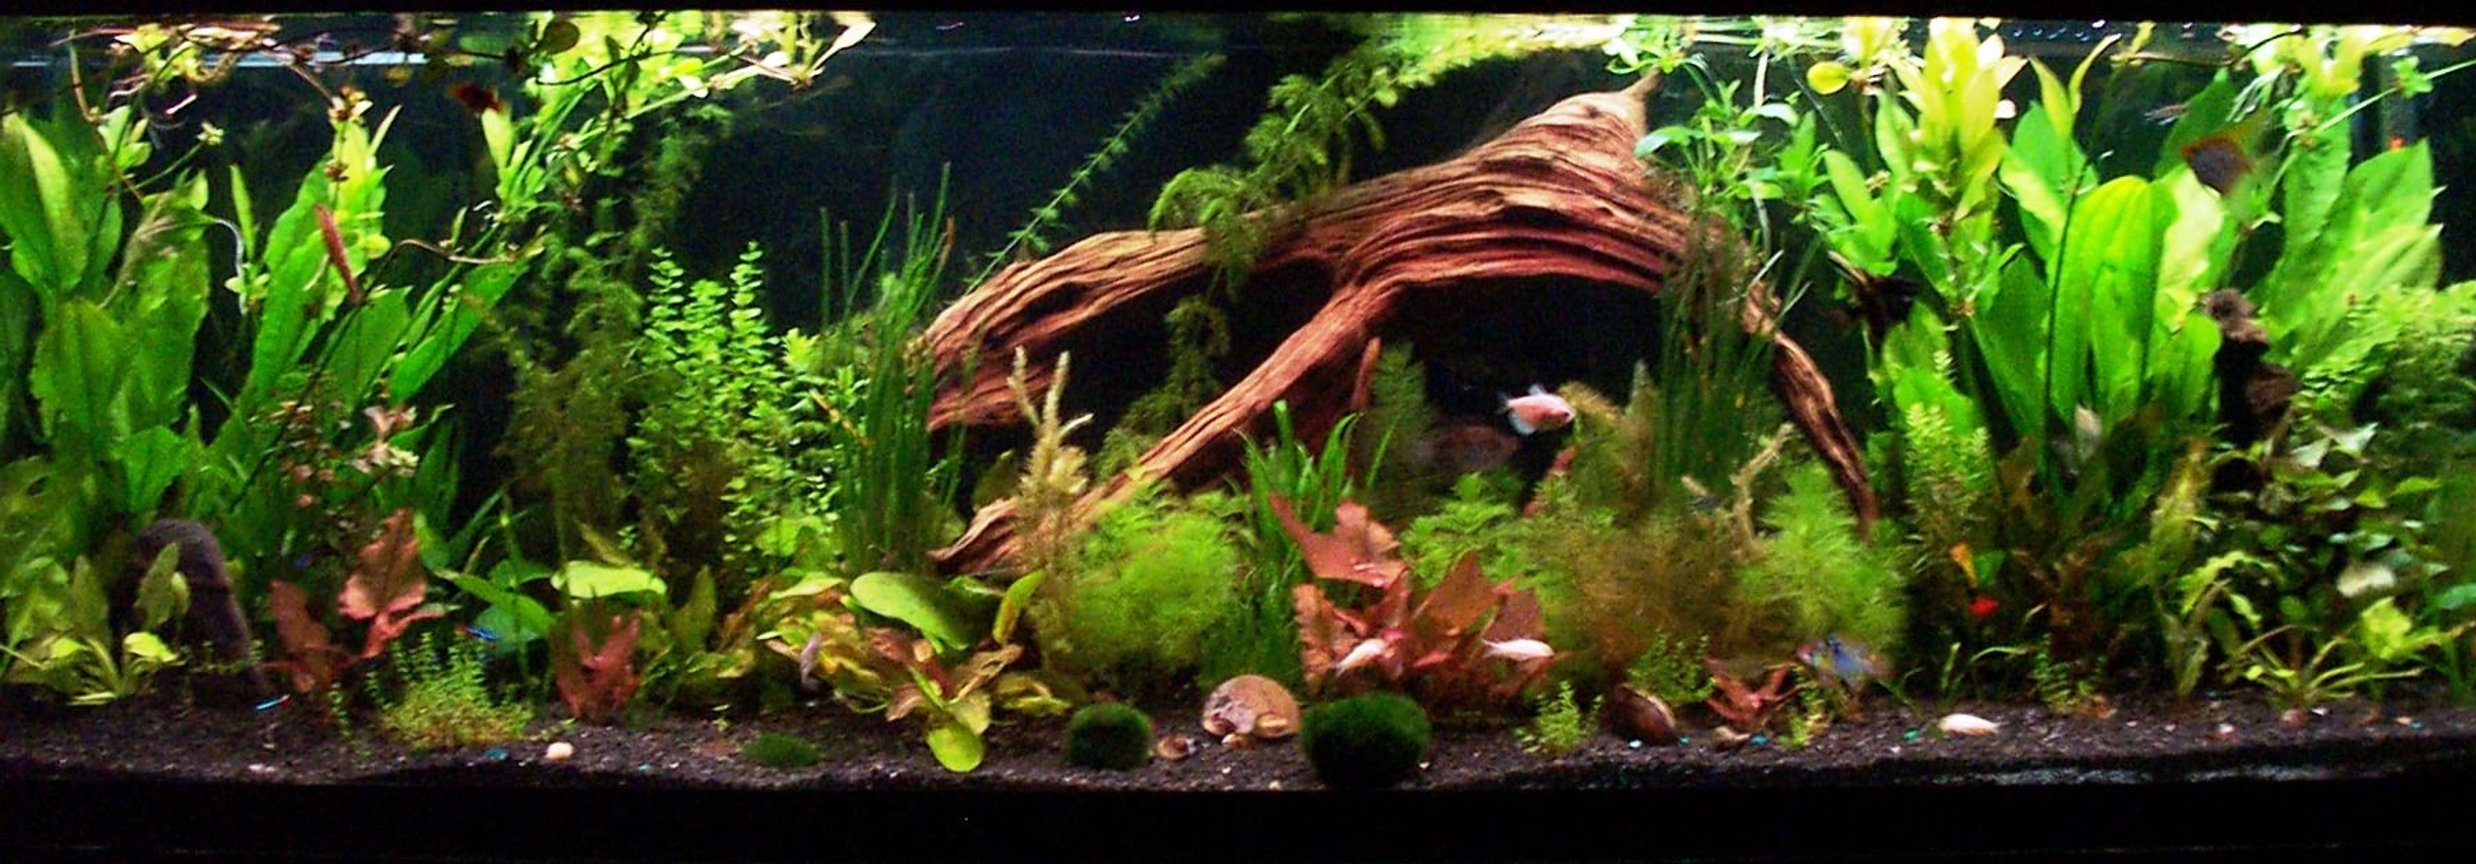 125 gallons planted tank (mostly live plants and fish) - the final product, i am 100% satisfied with the amount of plants i now have as well as quite happy with the lay out and the growth at the moment, please feel free to comment, and or leave any suggestions. Brandon